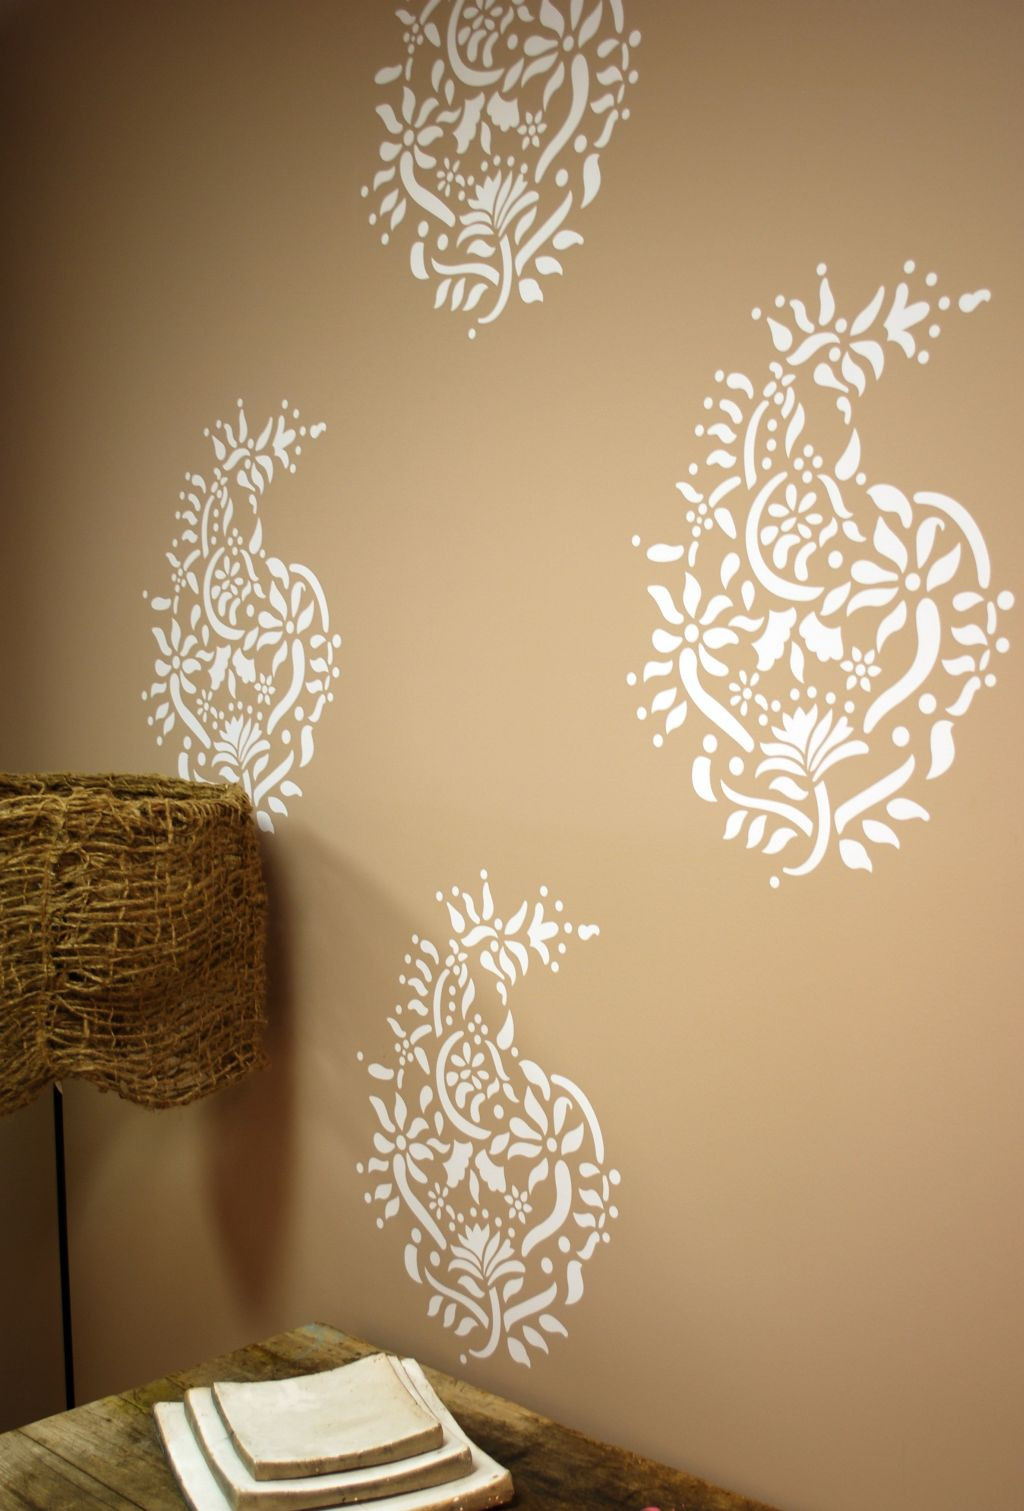 Best ideas about Cool Patterns To Paint . Save or Pin Paisley pattern Cool wall painting designs Now.